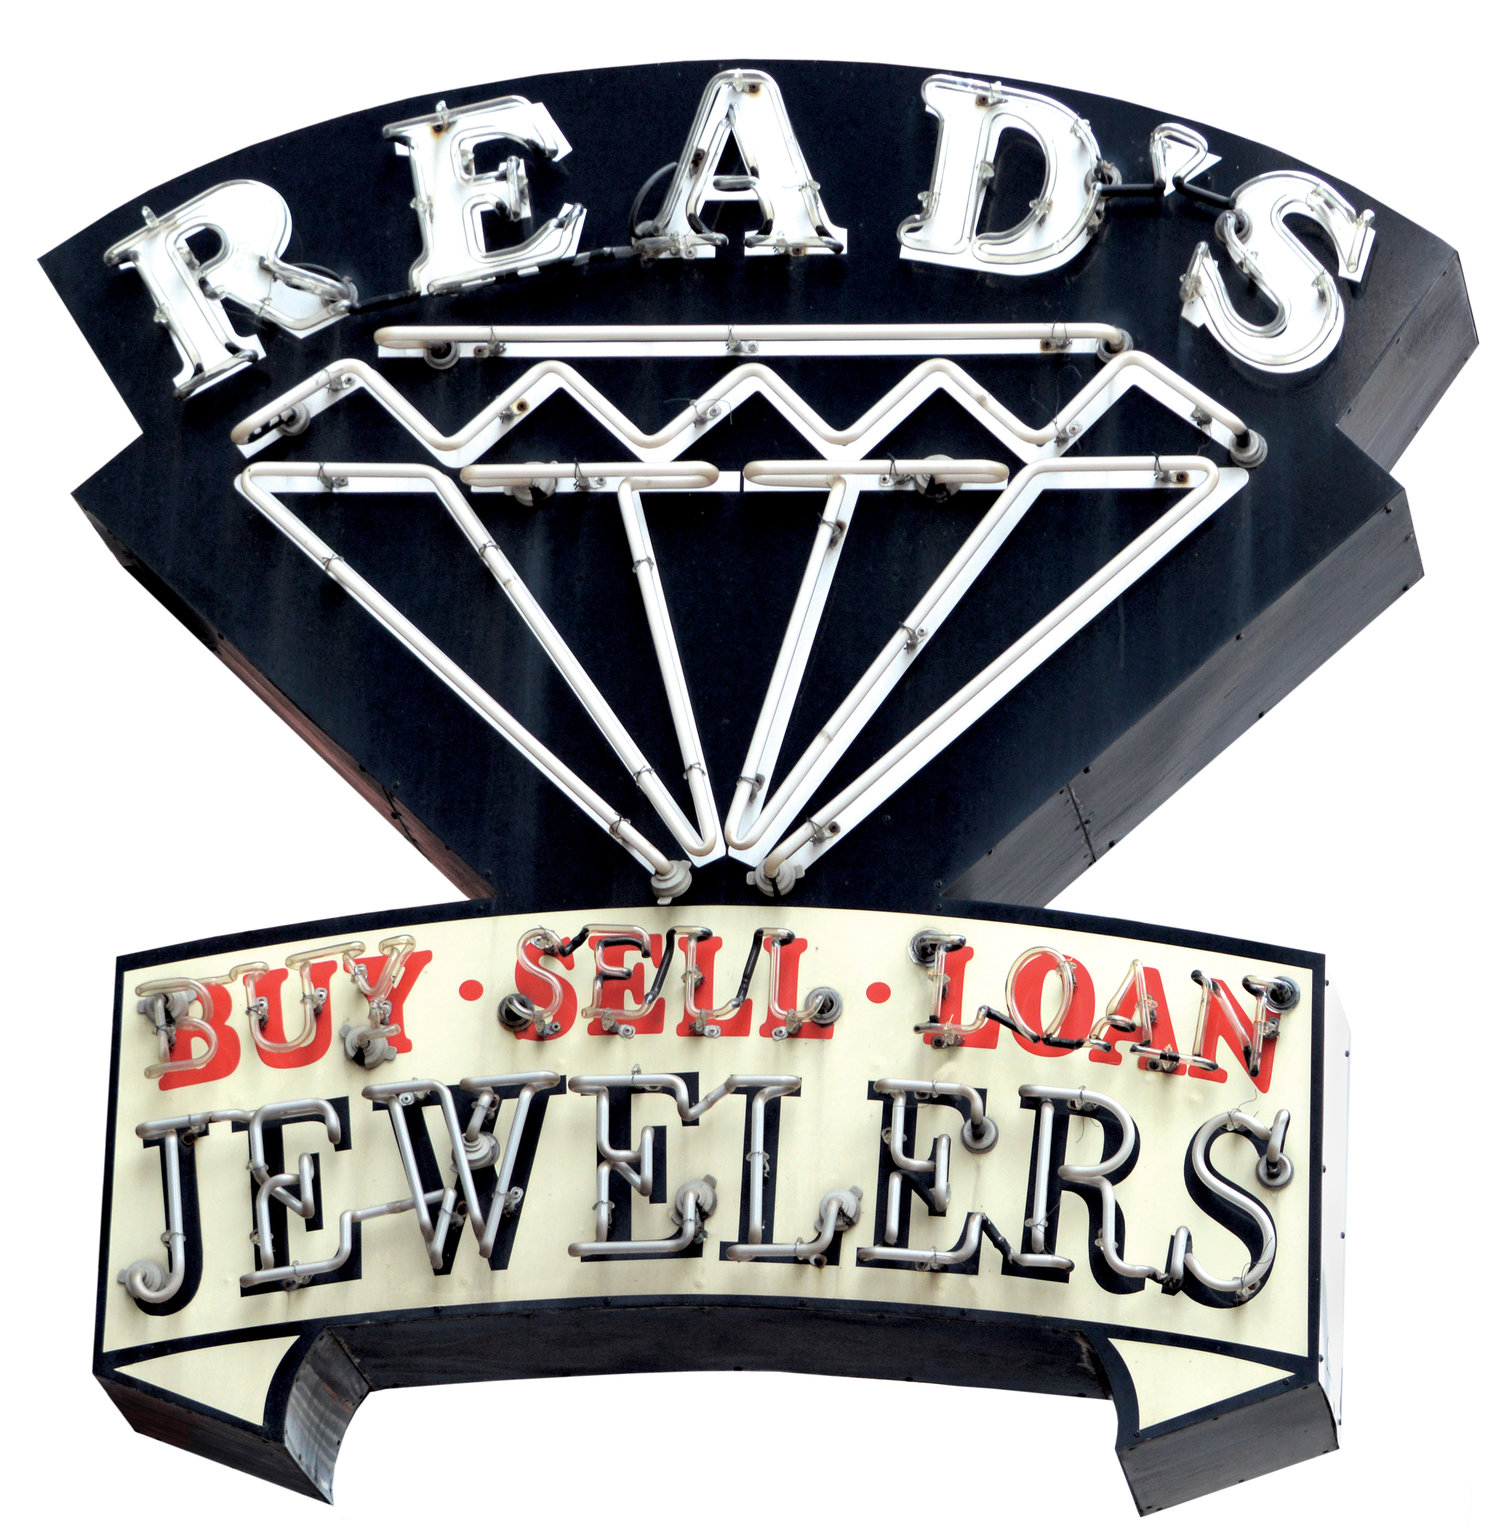 Read's Jewelry & Loan